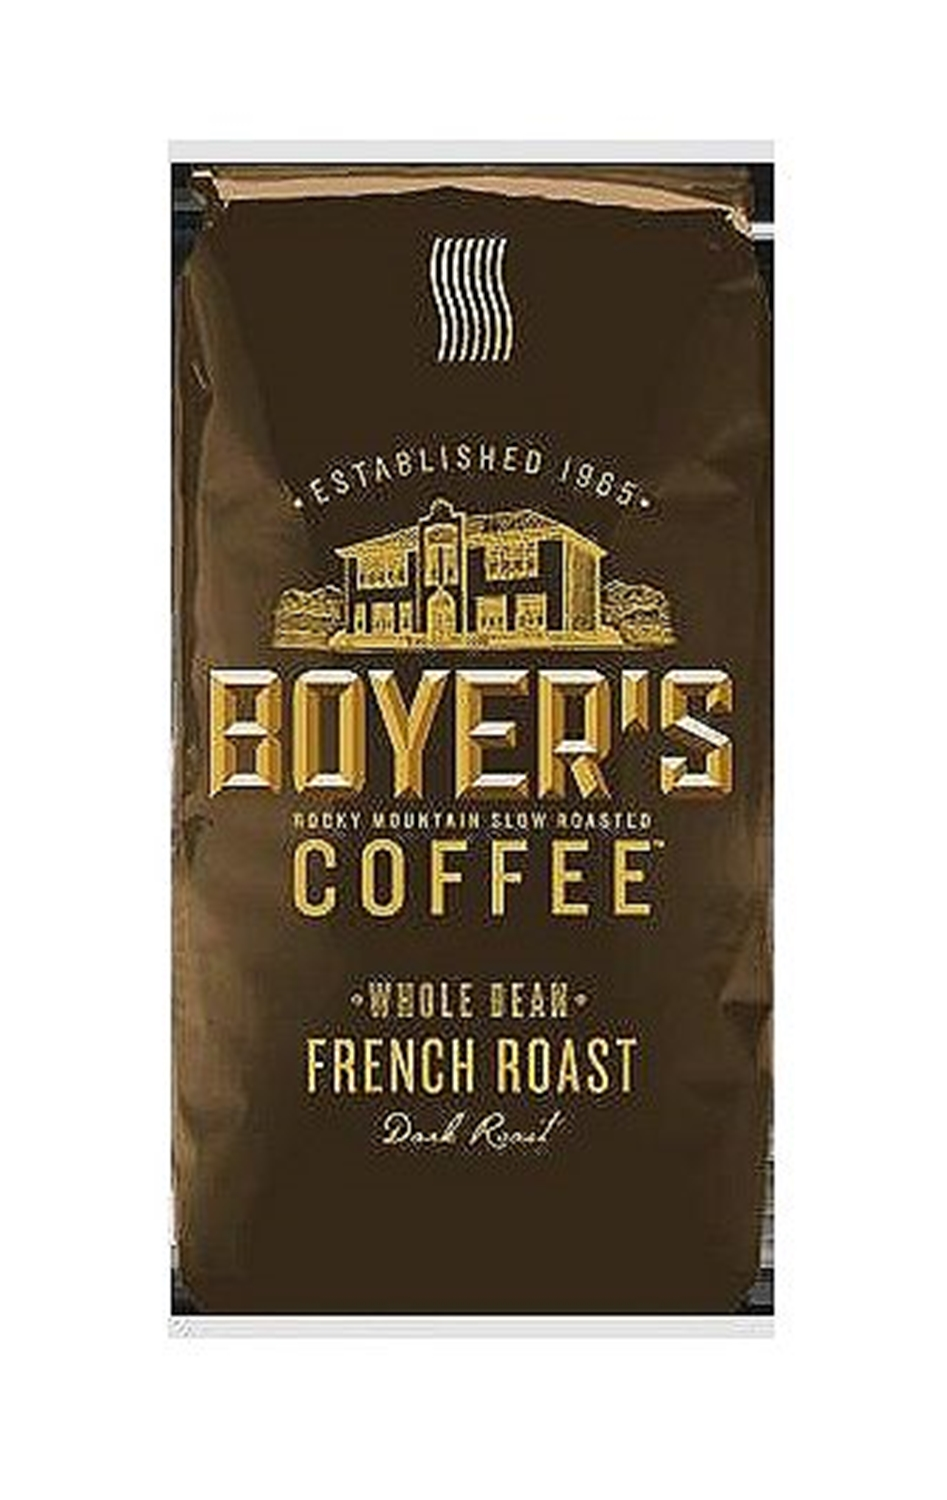 Boyer's Coffee, Whole Bean, French Roast (2.25 lb.)